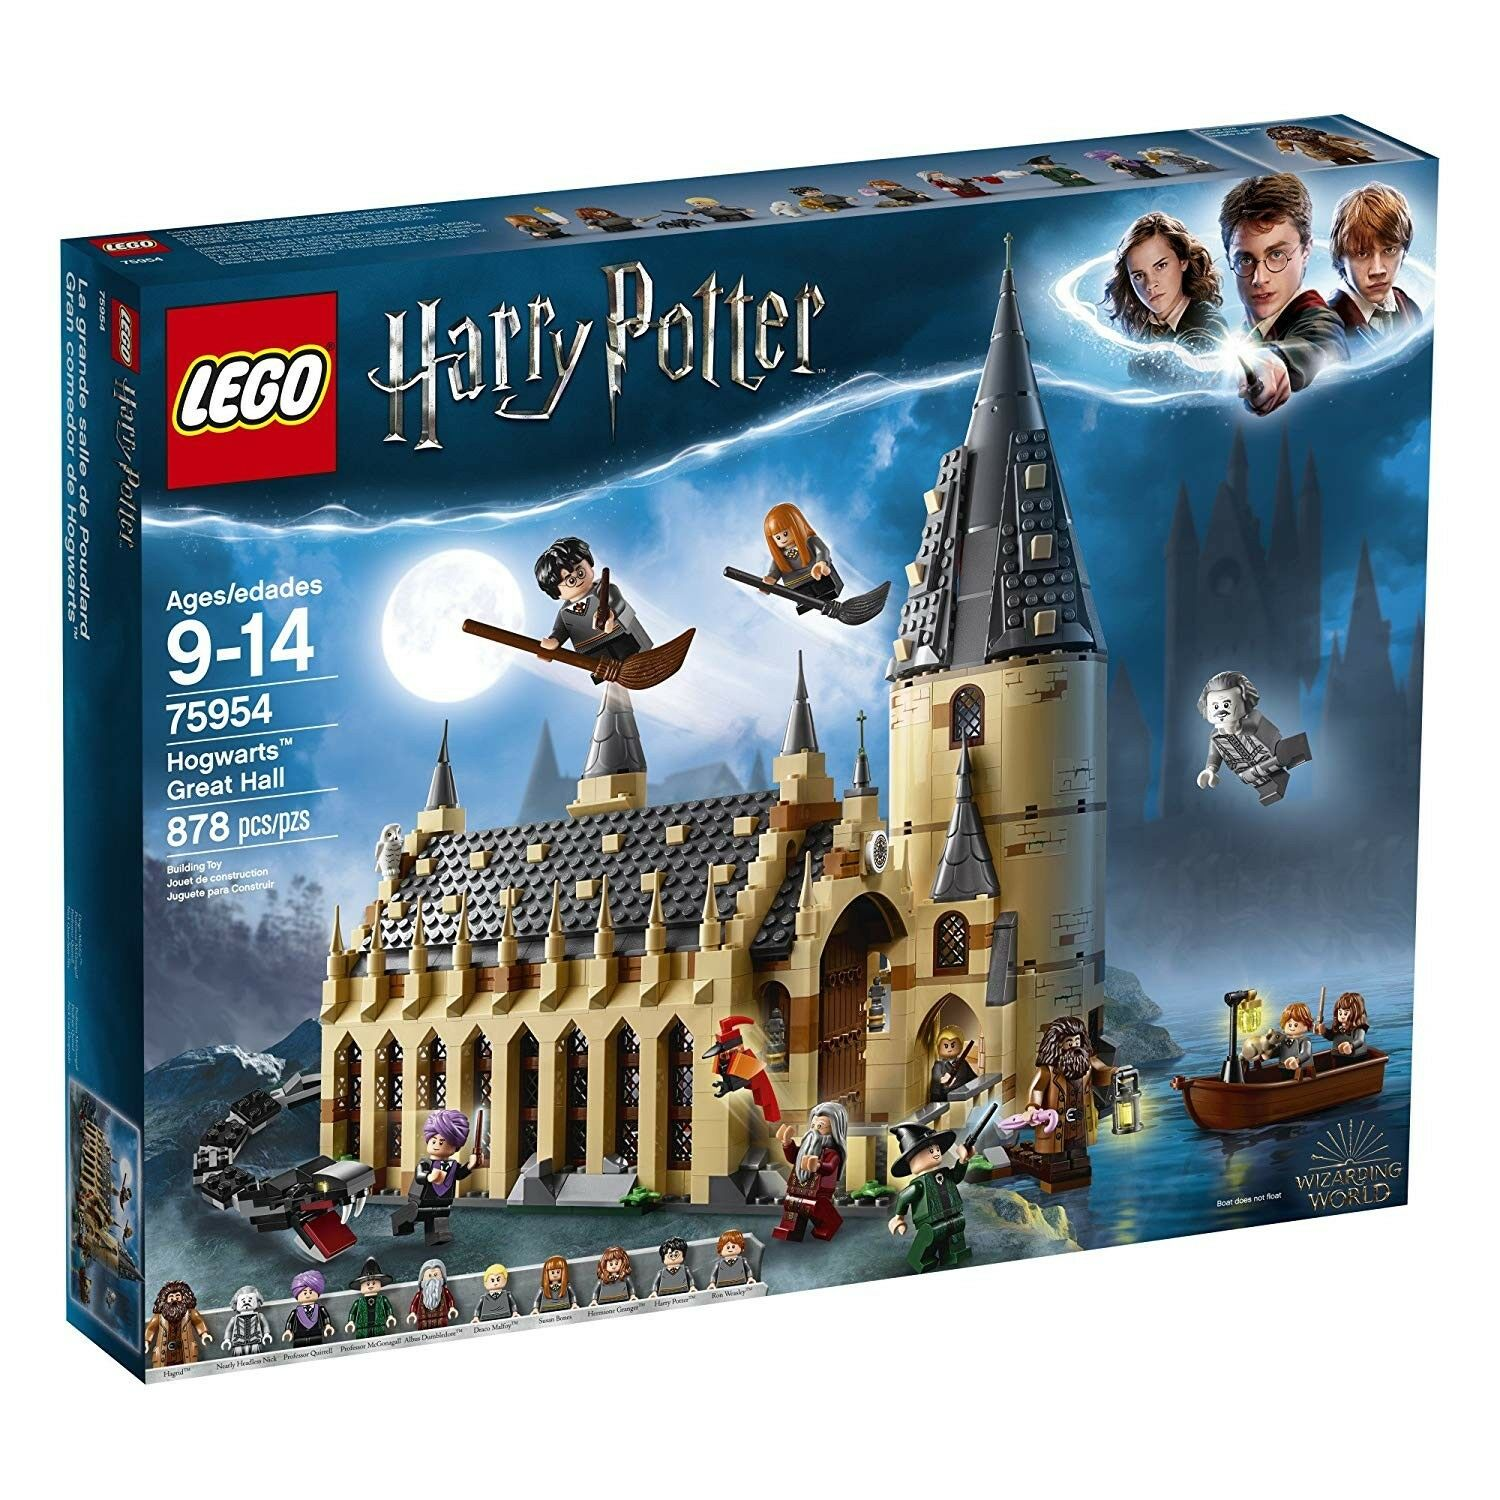 LEGO Harry Potter Hogwarts Hogwarts Hogwarts Great Hall 75954 Wizarding World New 2018 NIB dc66b6